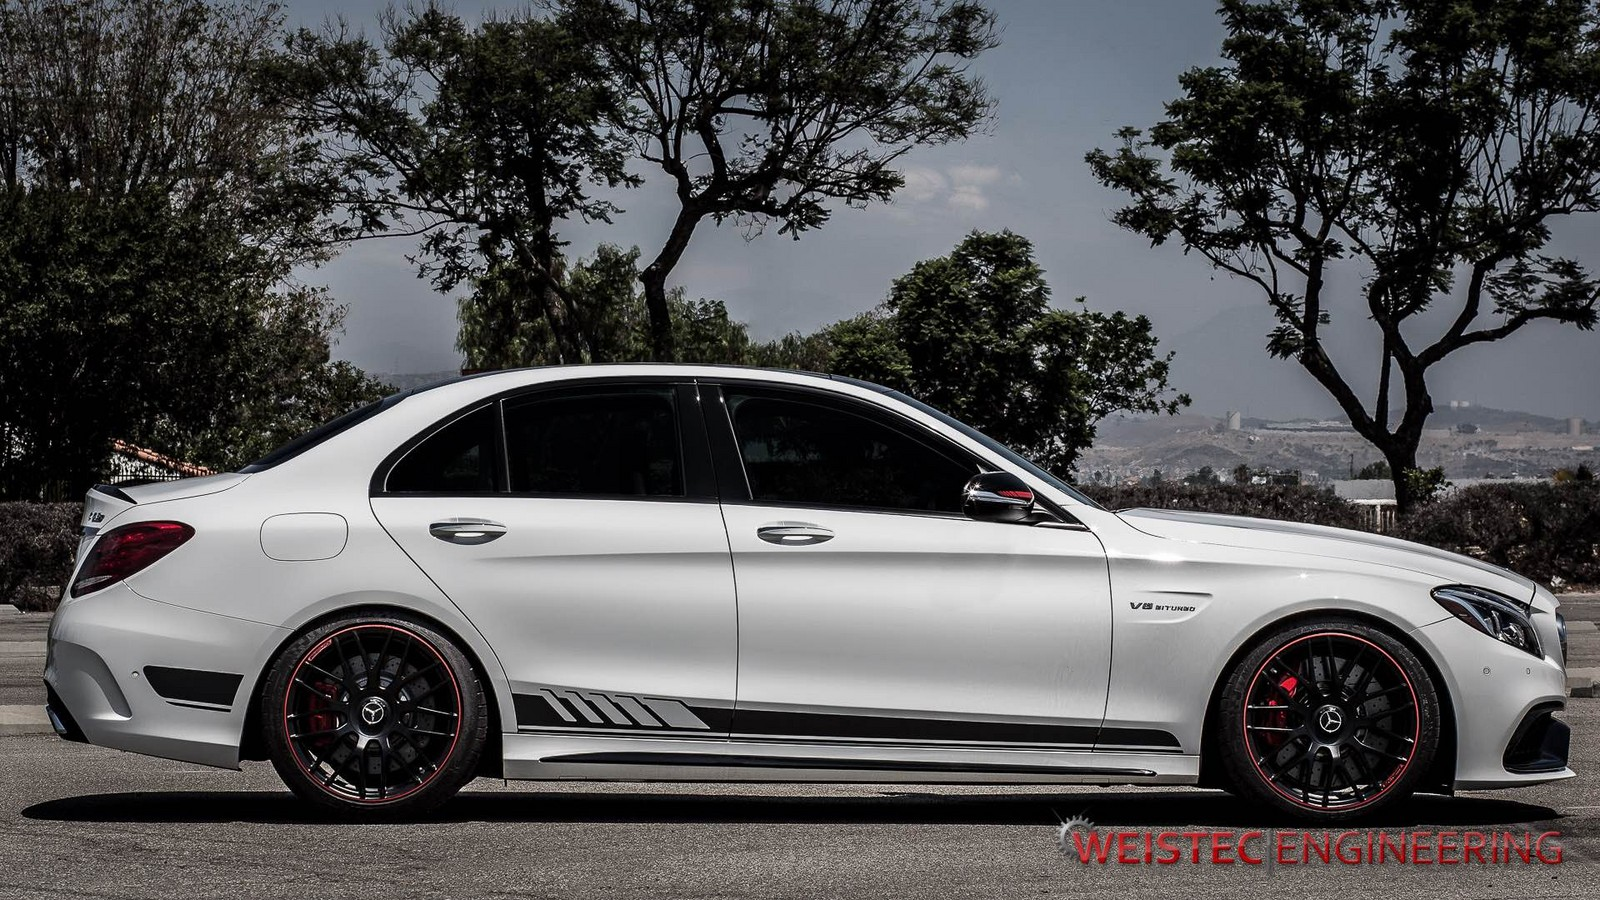 2015 mercedes benz c63 amg w205 weistec 1 4 mile drag. Black Bedroom Furniture Sets. Home Design Ideas